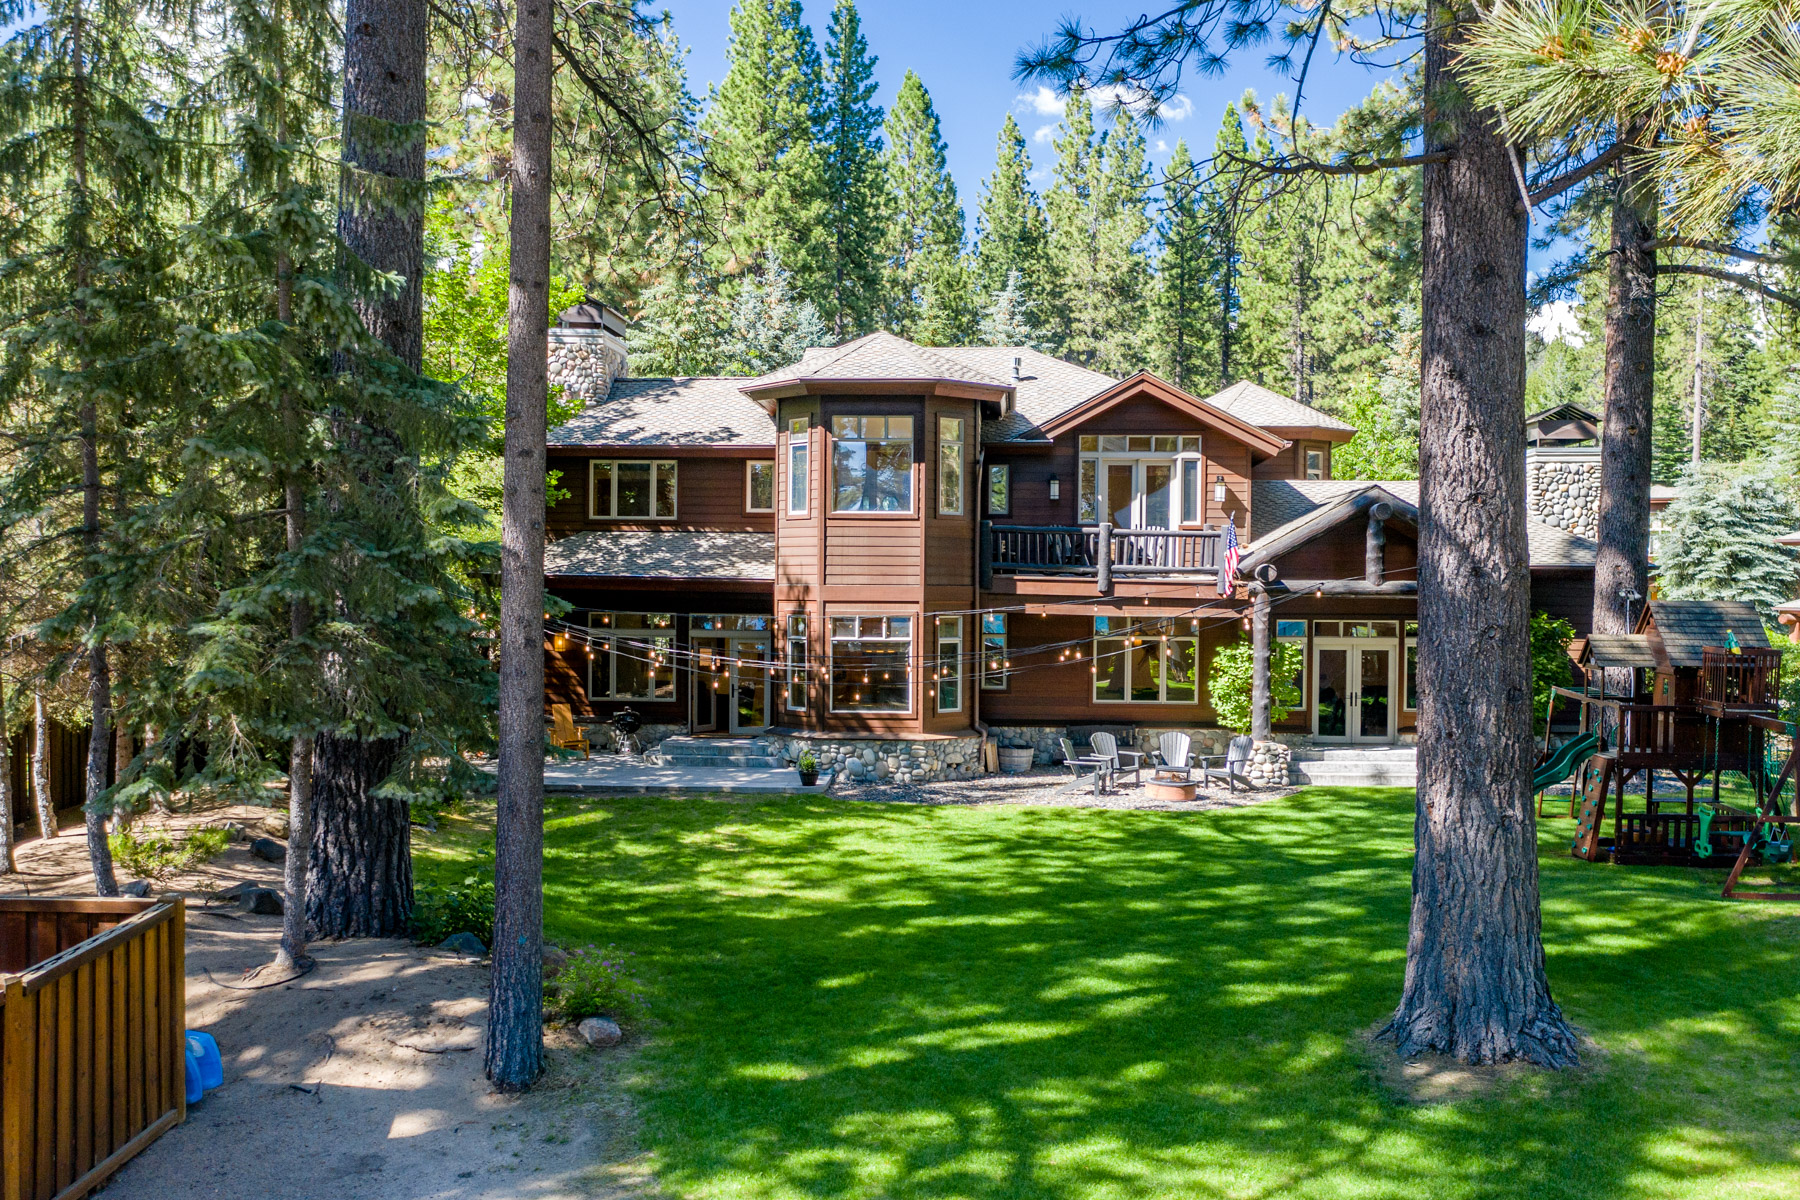 Single Family Homes for Active at 948 Lakeshore View Ct, Incline Village, NV 948 Lakeshore View Court Incline Village, Nevada 89451 United States